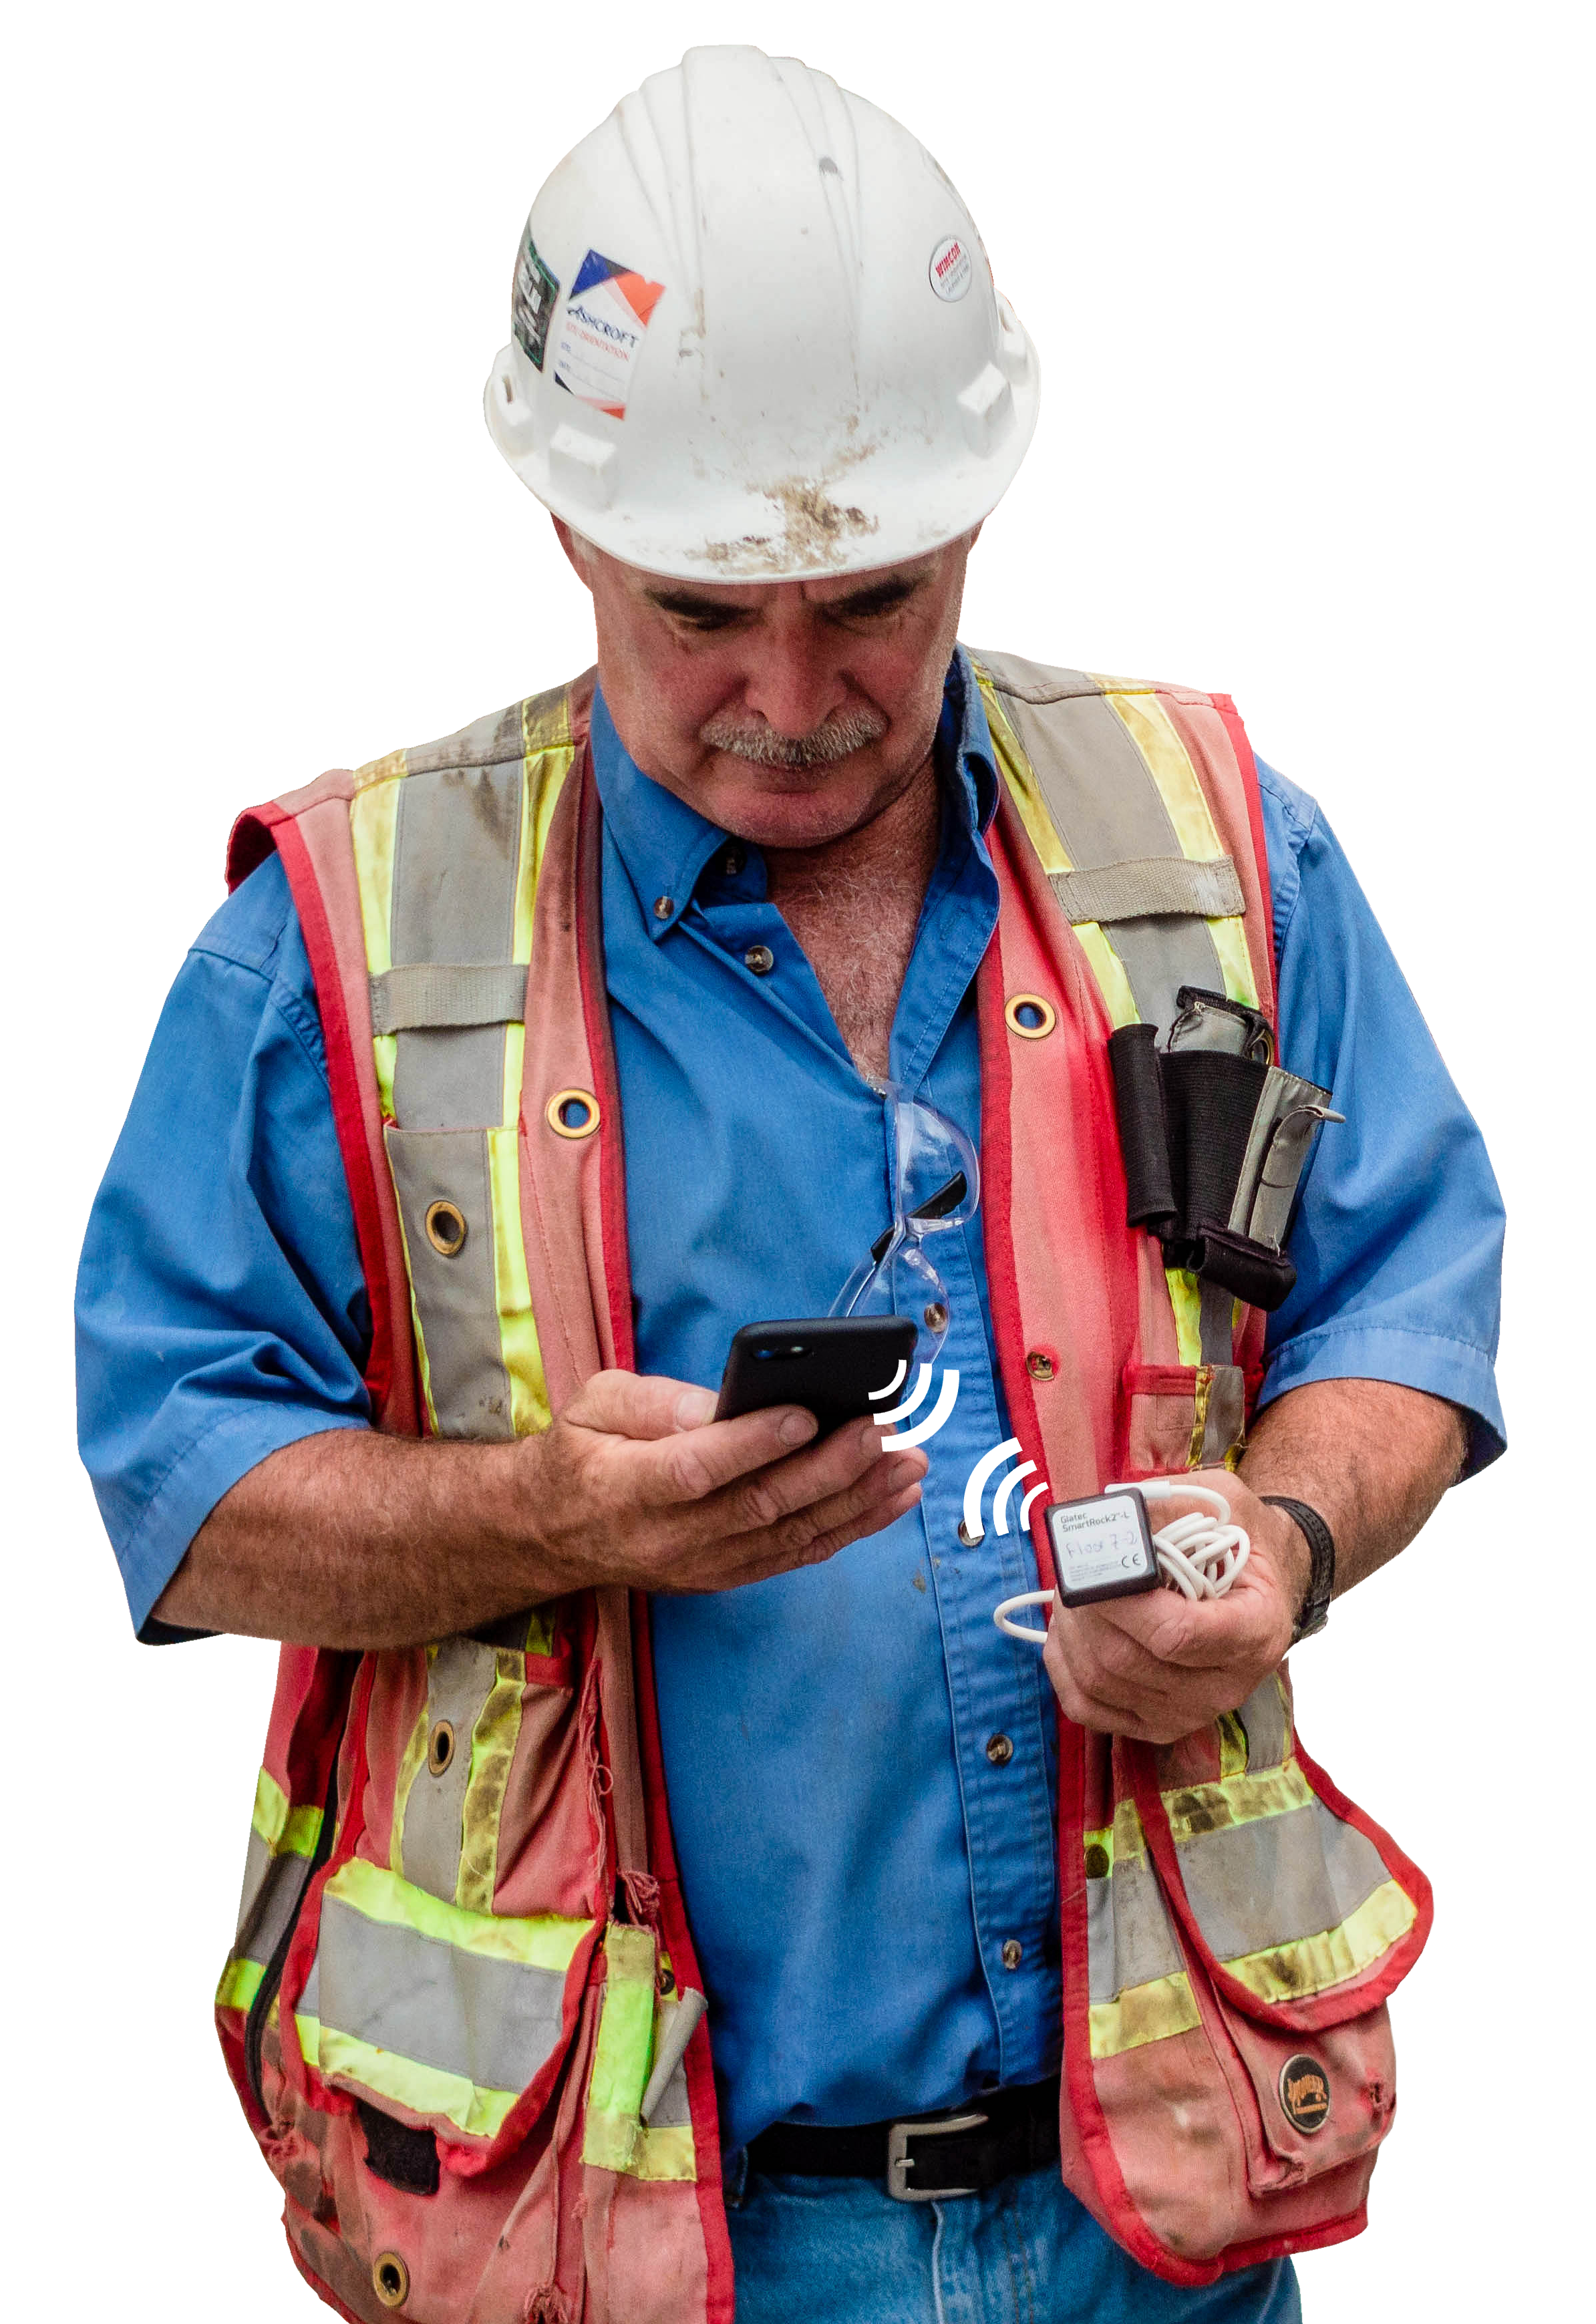 Construction worker holding a phone and smartrock sensor